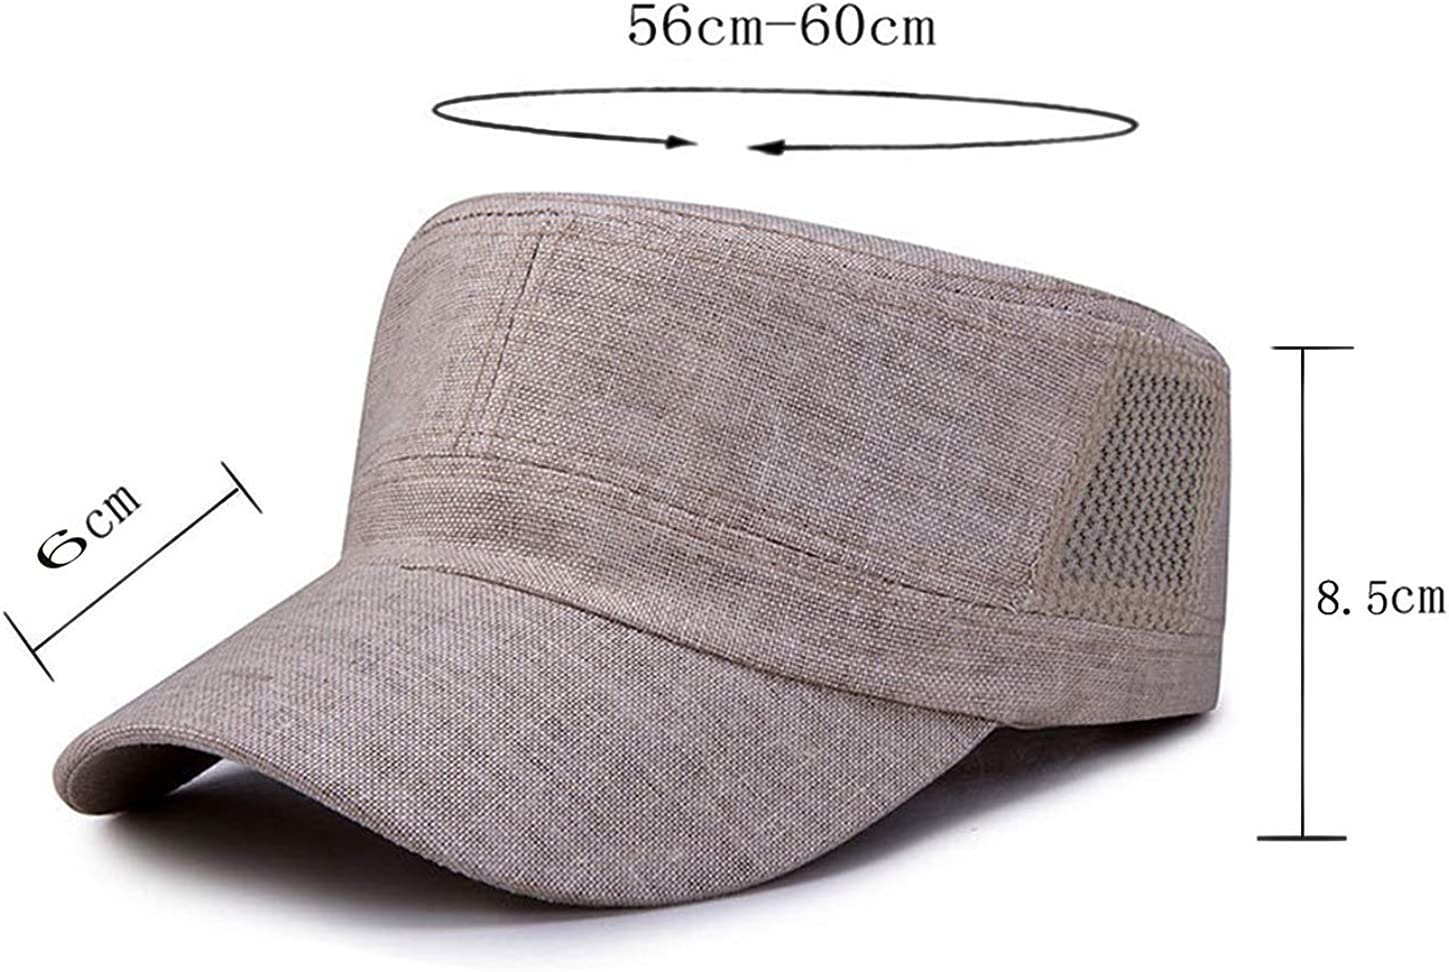 Tian Fan Ni Men Trucker Cap Flax Cotton Flat Cap Outdoor Military Hats Adjustable Baseball Cap